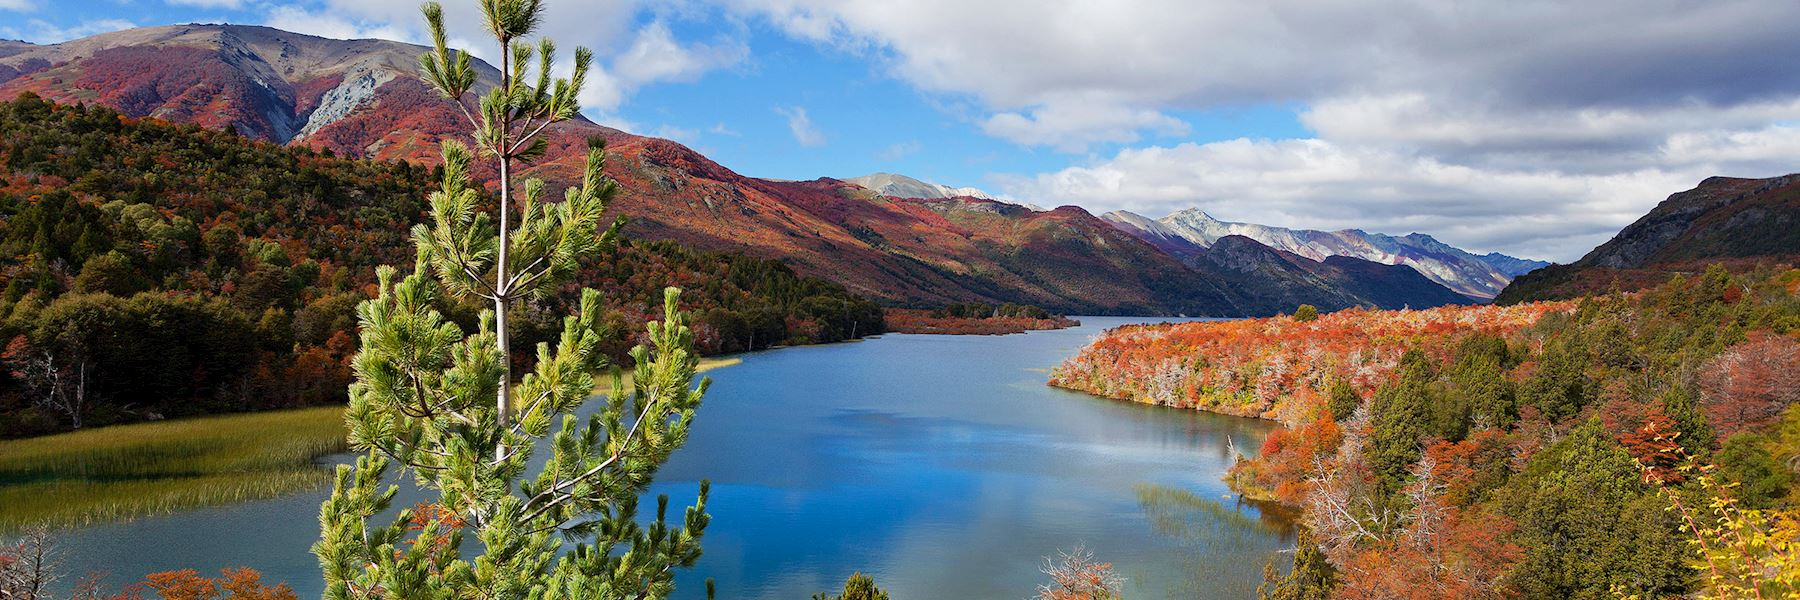 argentina itinerary ideas audley travel